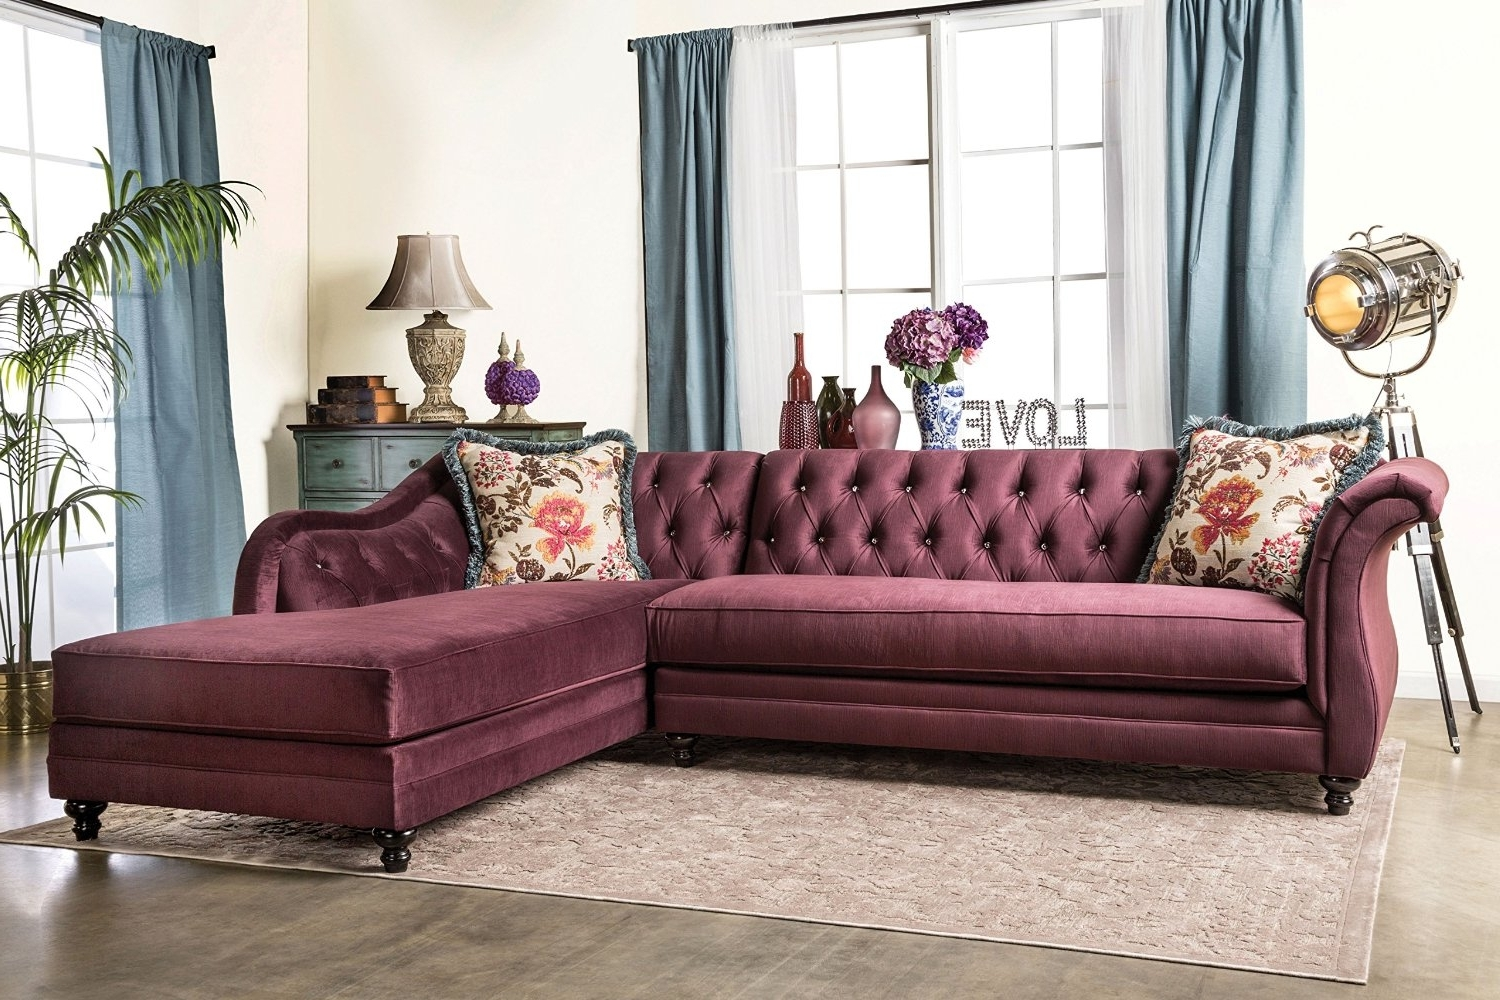 25 Best Chesterfield Sofas To Buy In 2018 Intended For 2018 Chesterfield Sofas (View 1 of 15)